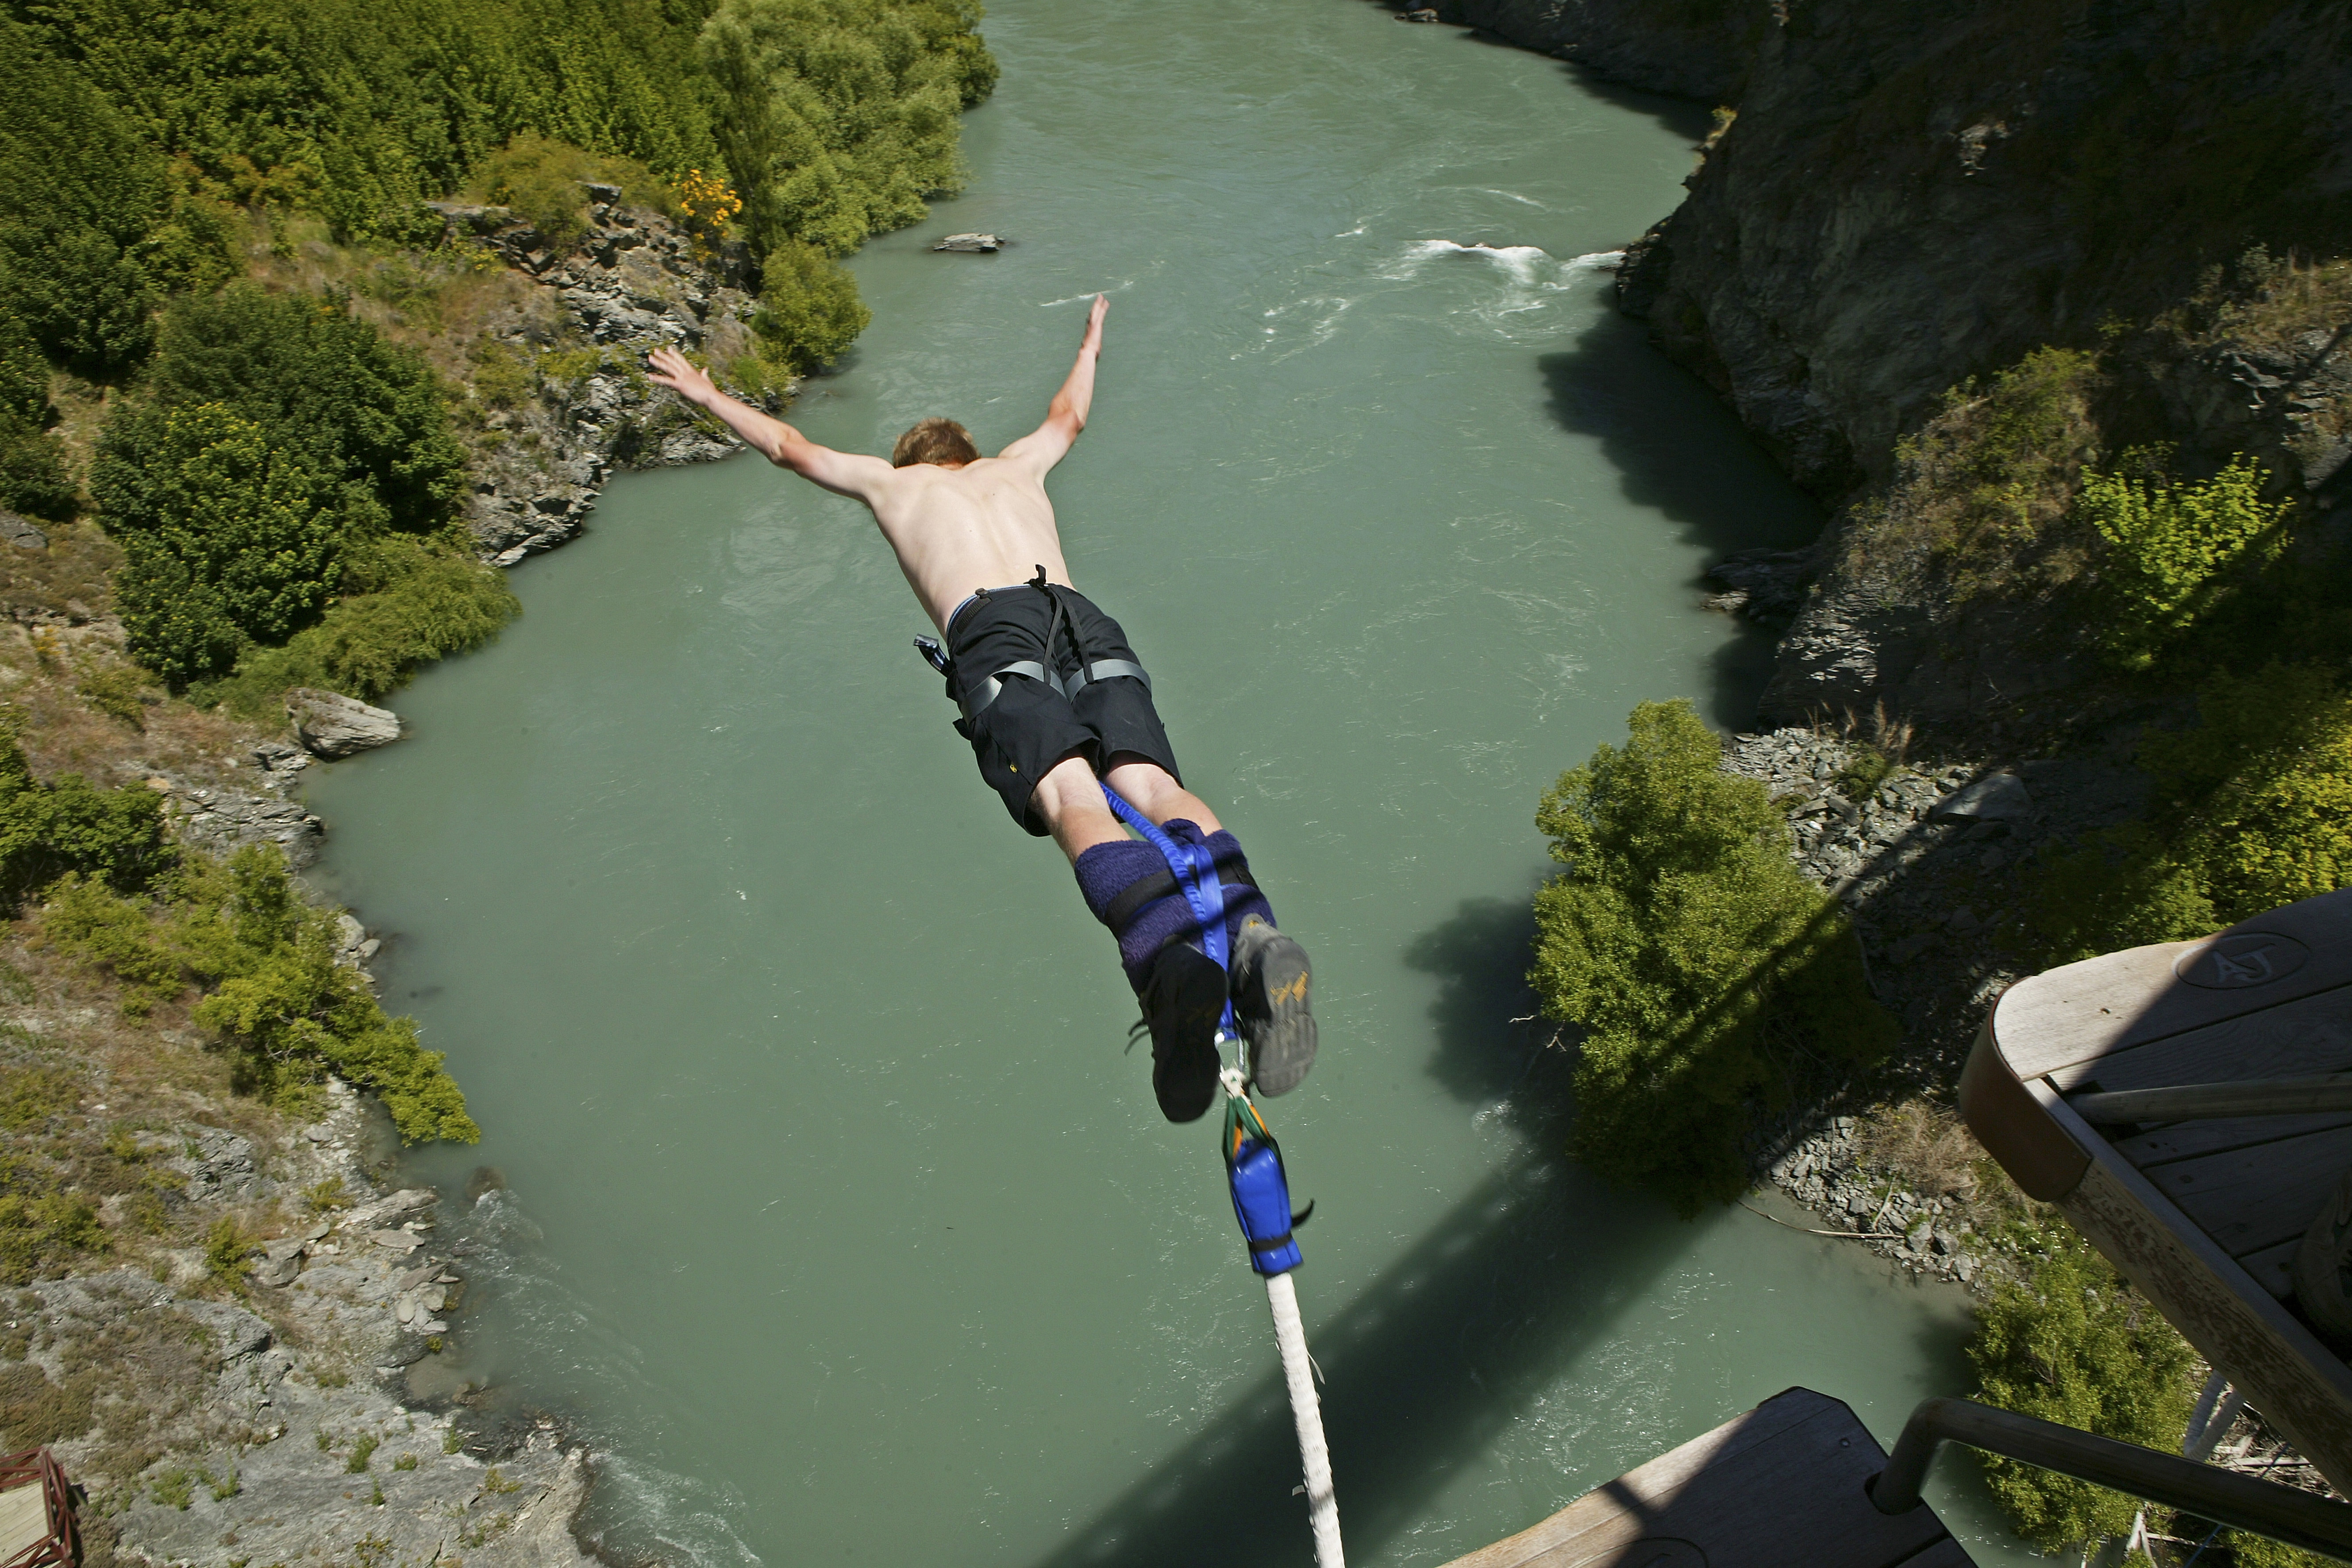 Bungy jumping New Zealand adventure travel safety first